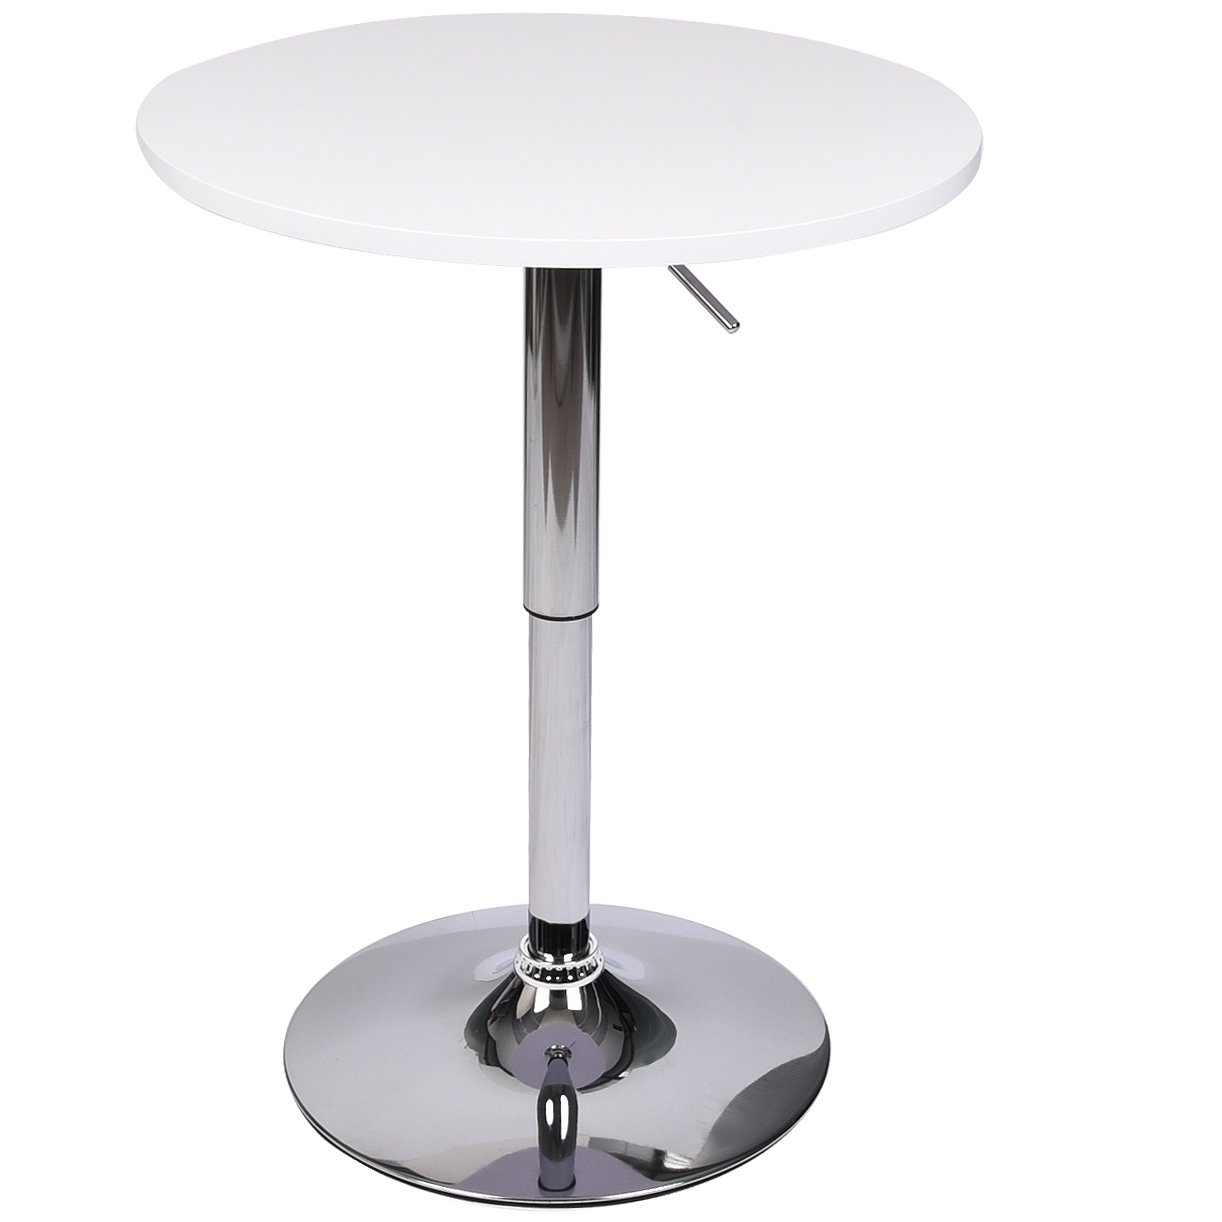 Elecwish ELEWISH Pub Bar Table Round White MDF Swivel Top with Chrome Finish Base Adjustable Height for Counter